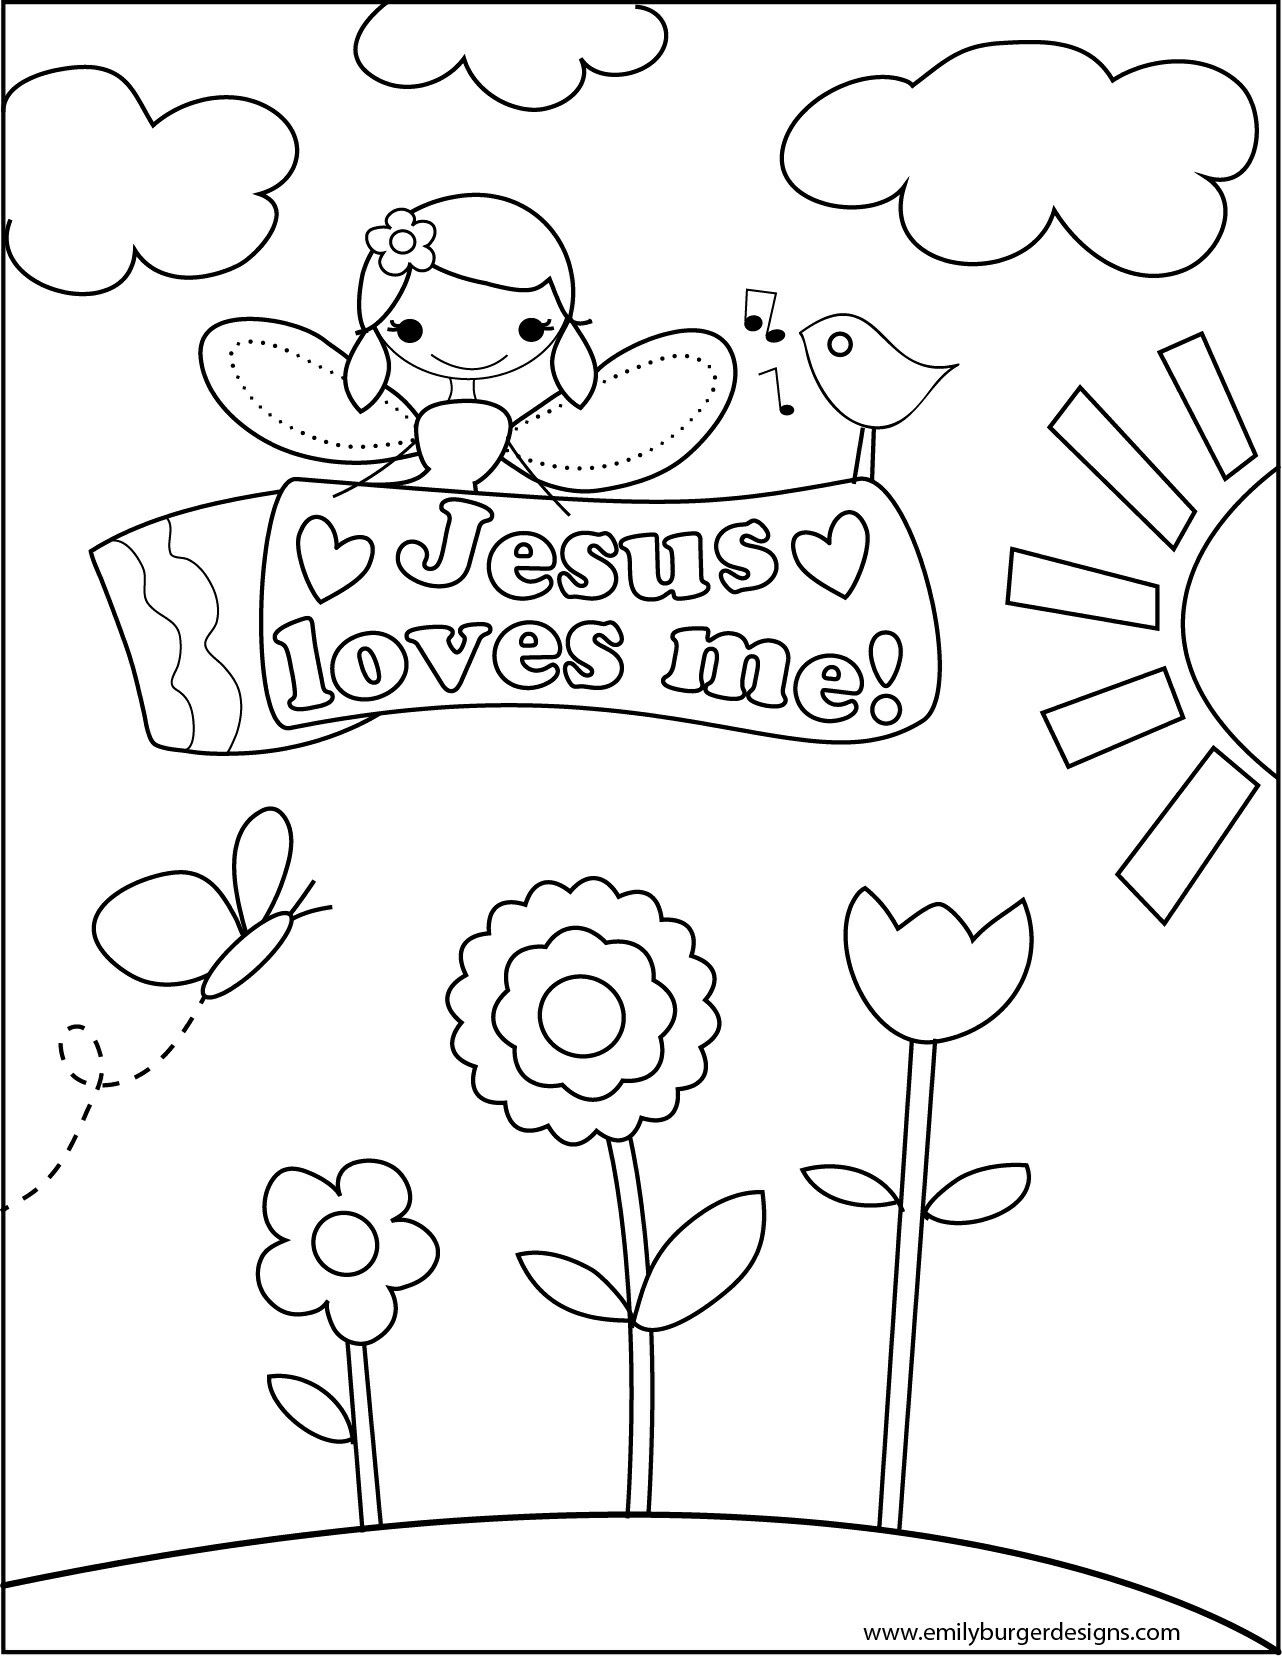 Jesus Me Ama Love Coloring Pages Jesus Coloring Pages Sunday